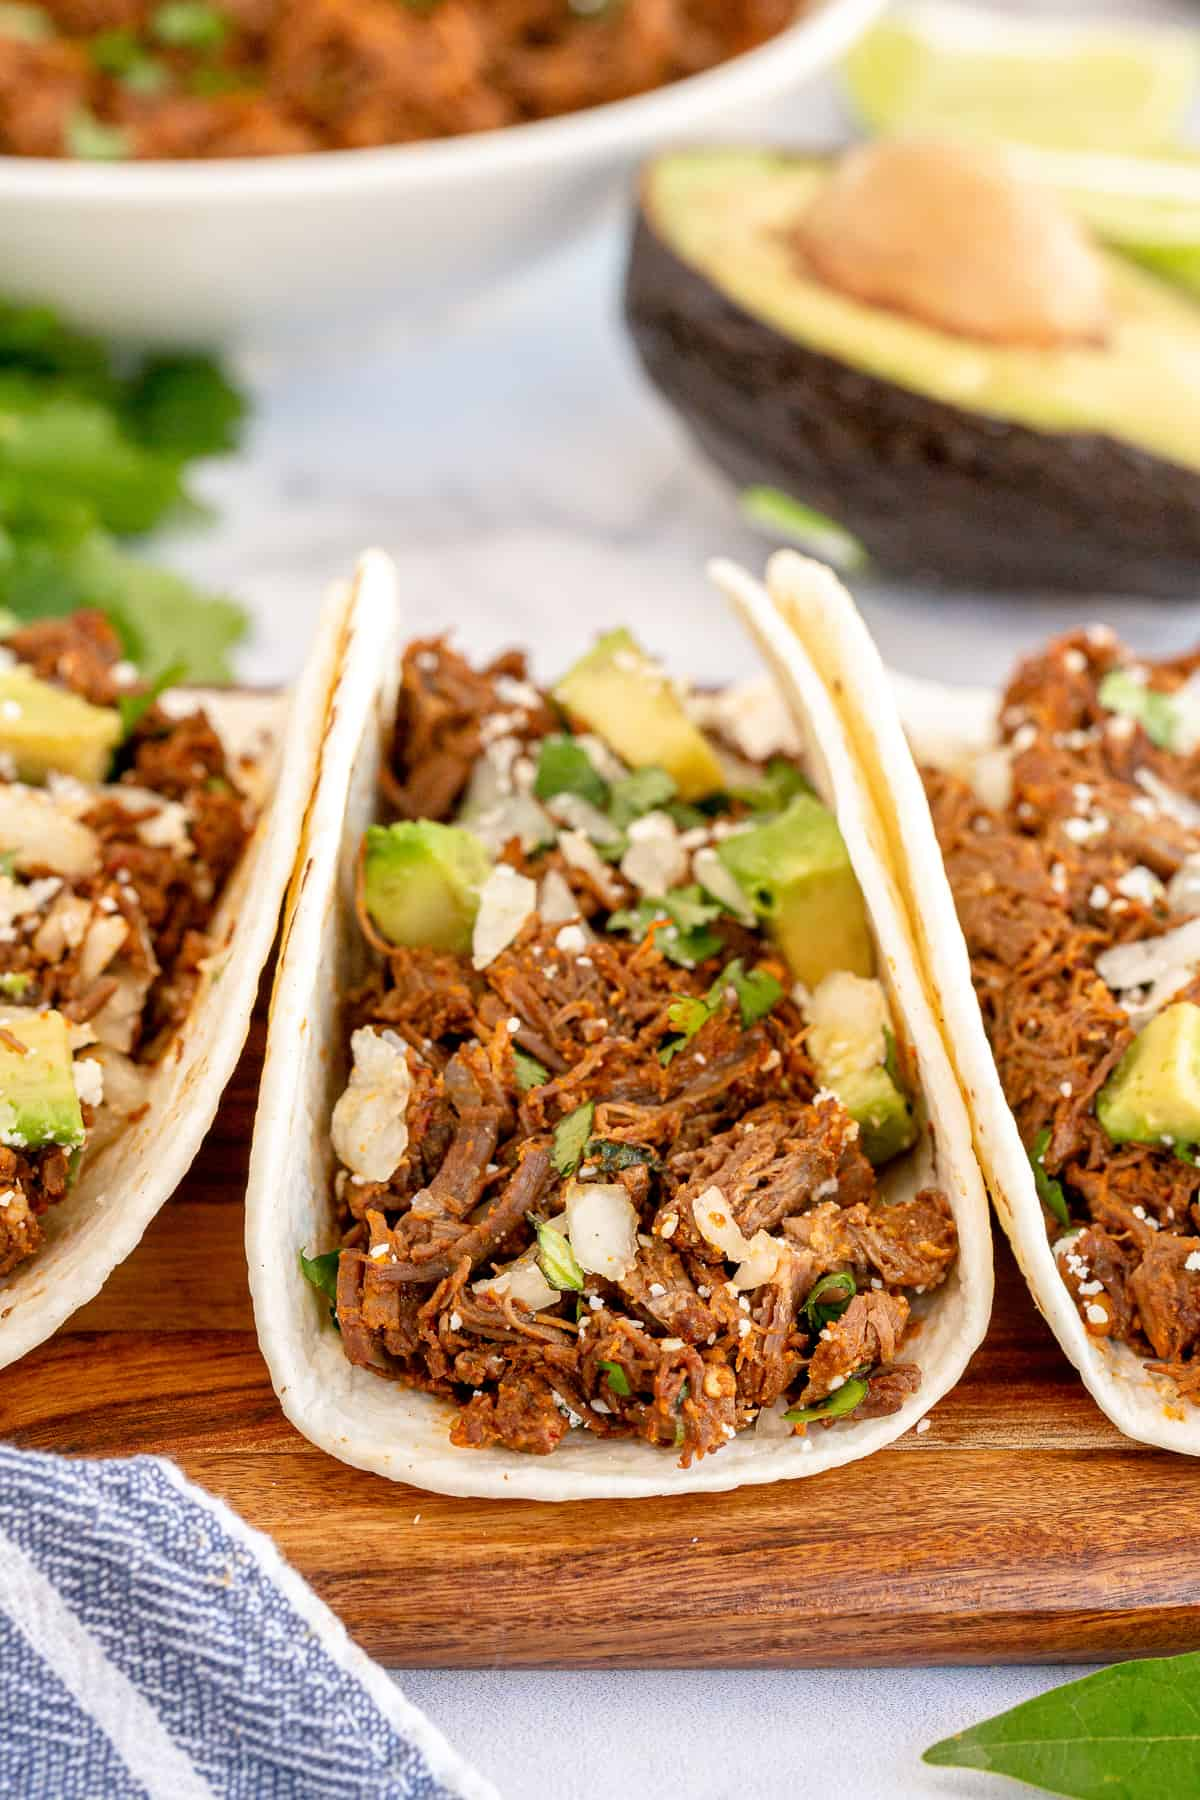 Three barbacoa tacos on a cutting board shot from the side.